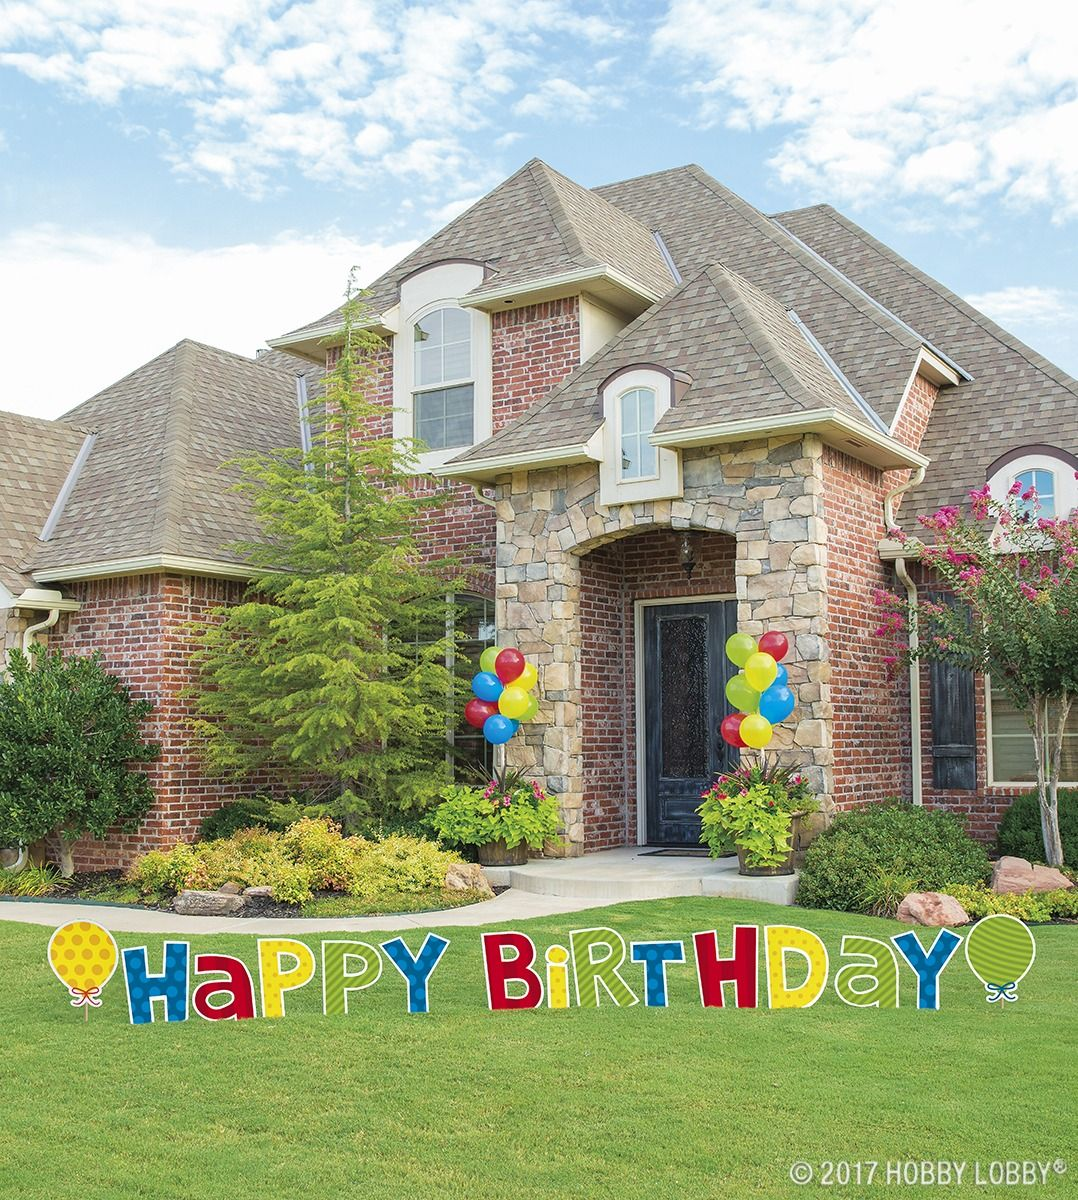 Supersize Your Party Decor With Our Wide Selection Of Jumbo Lawn Signs Birthday Yard Signs Birthday Yard Signs Diy Birthday Lawn Signs